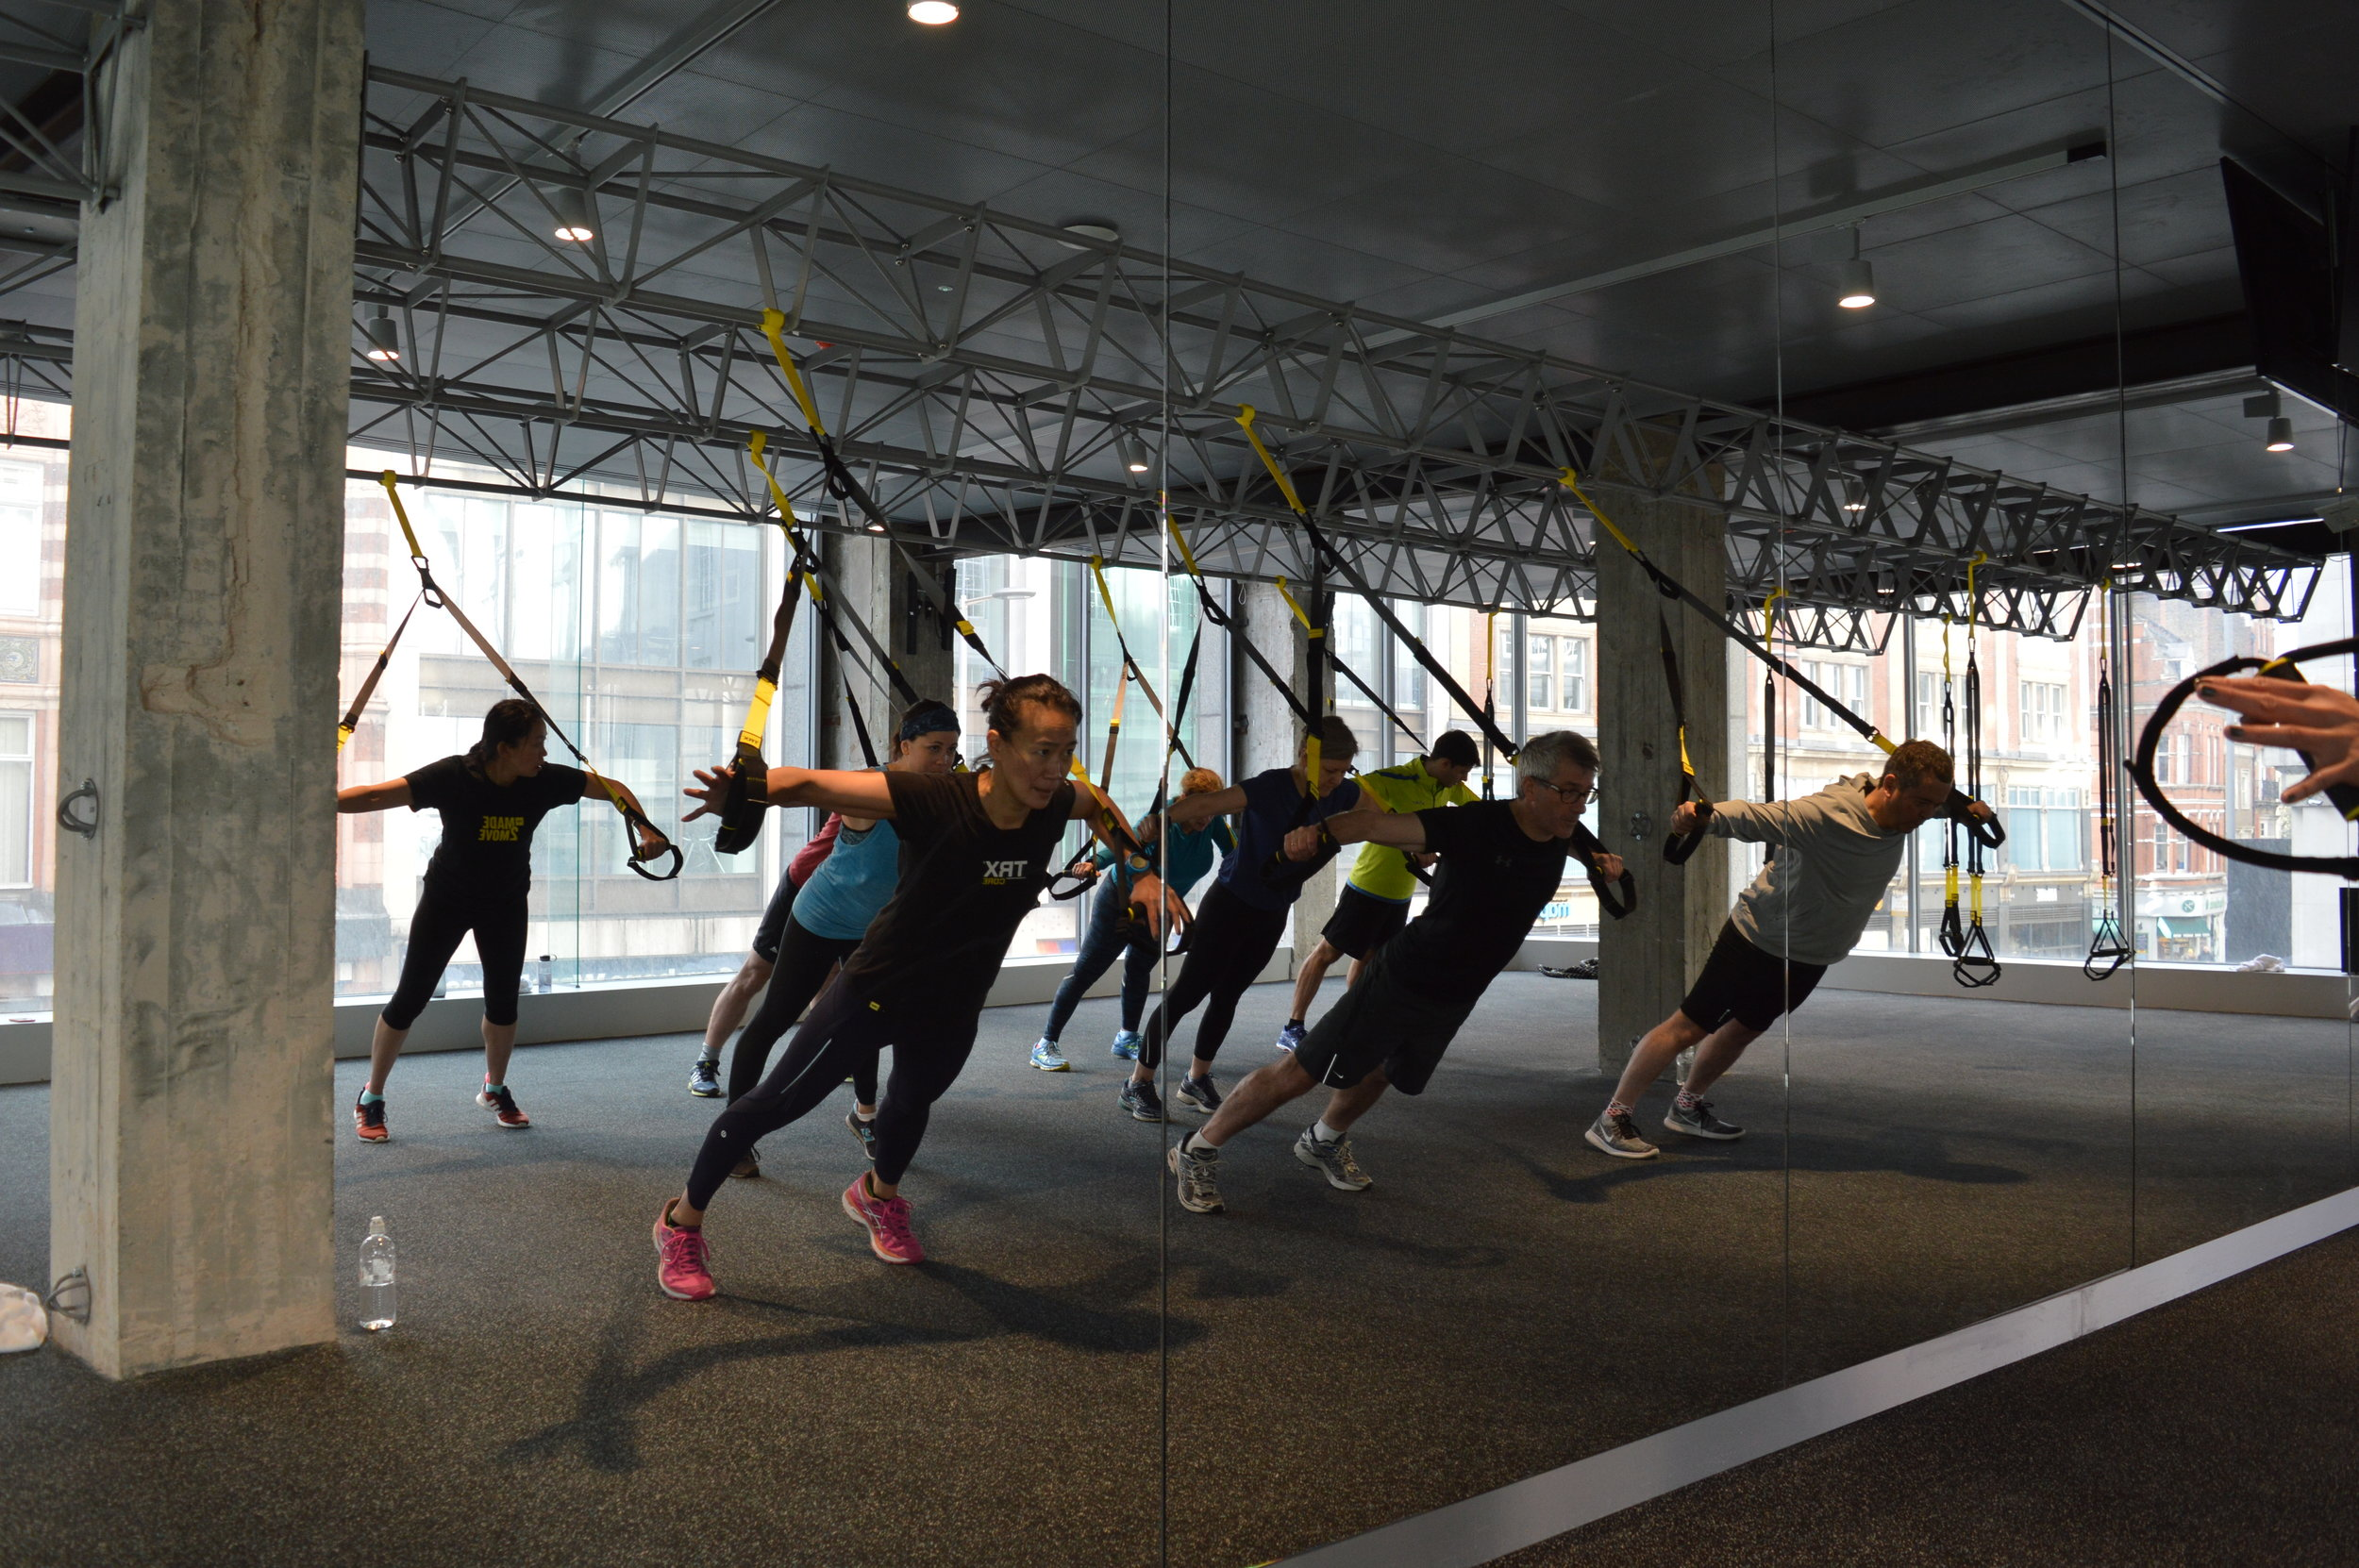 TRX BLACK & YELLOW HIGHEST RANK COACH & COURSE INSTRUCTOR - For the last 5 years Frances has devoted significant time to training with the TRX Education team in the US and has risen to become one of the most highly qualified TRX coaches in the world.